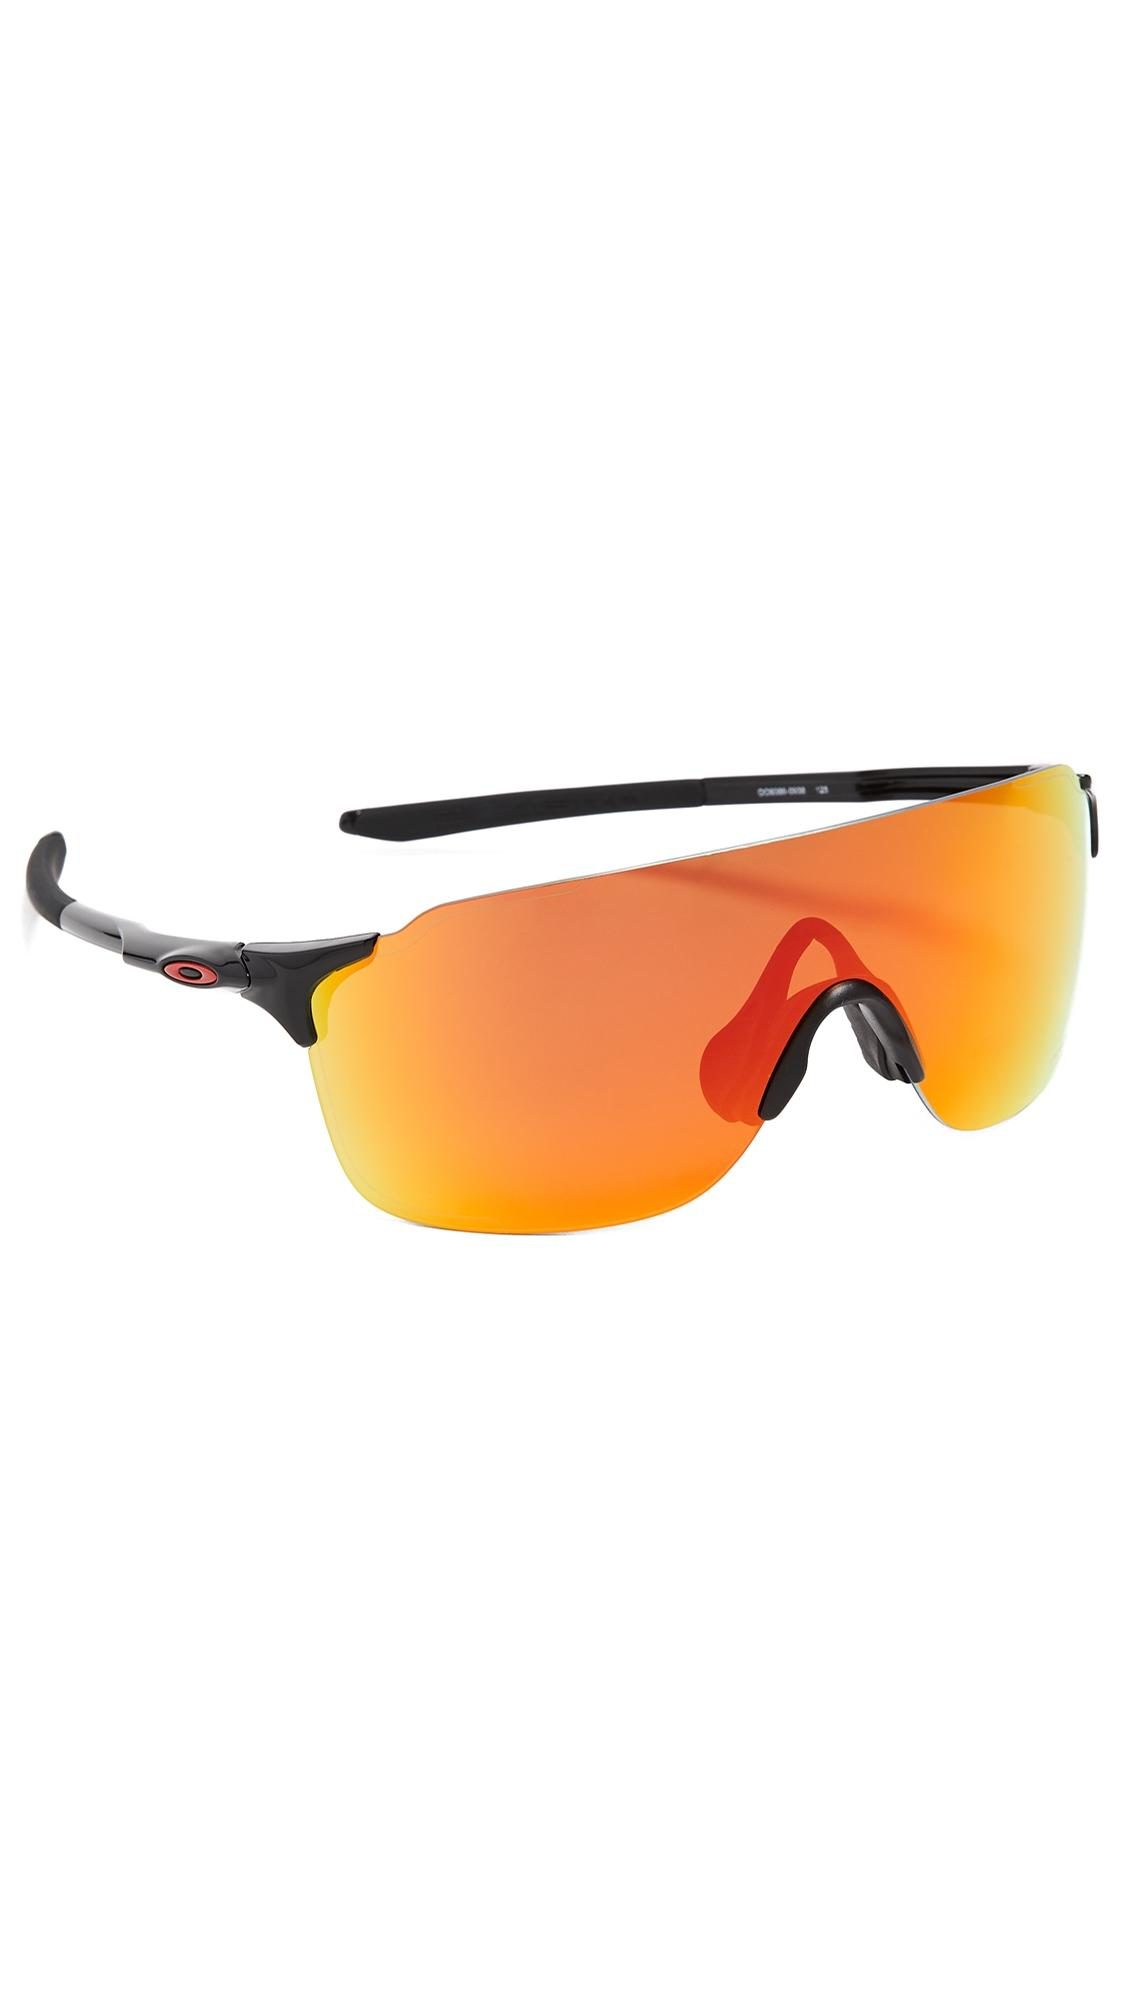 072a6d6a427 Oakley Evzero Stride Prizm Sunglasses In Black Red